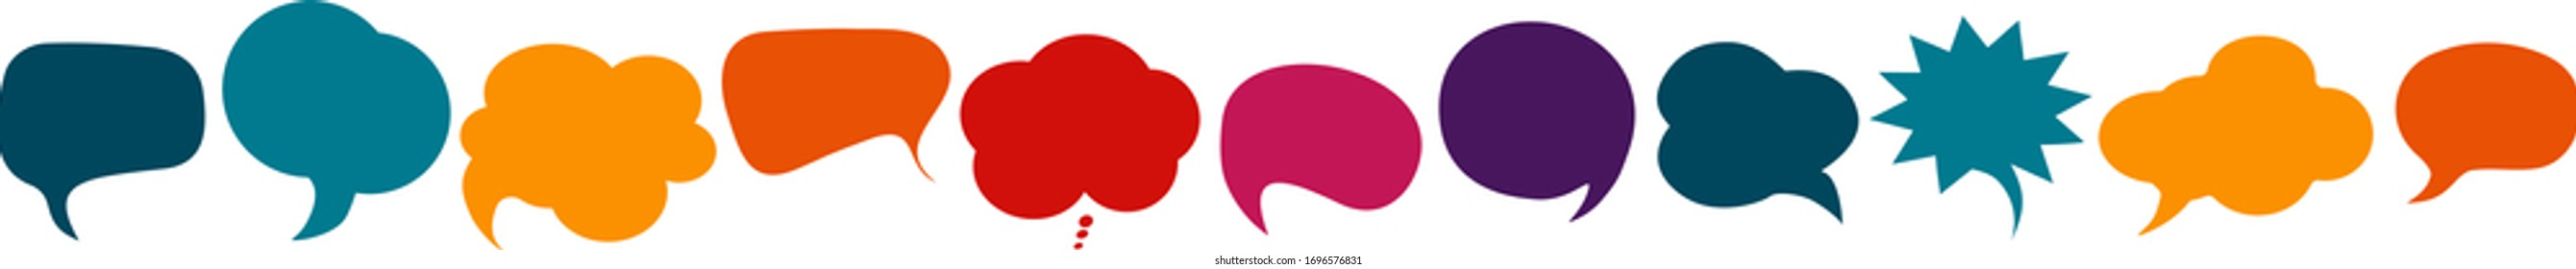 Colored speech bubble. Communication concept. Social network. Colored cloud. To speak - discussion.